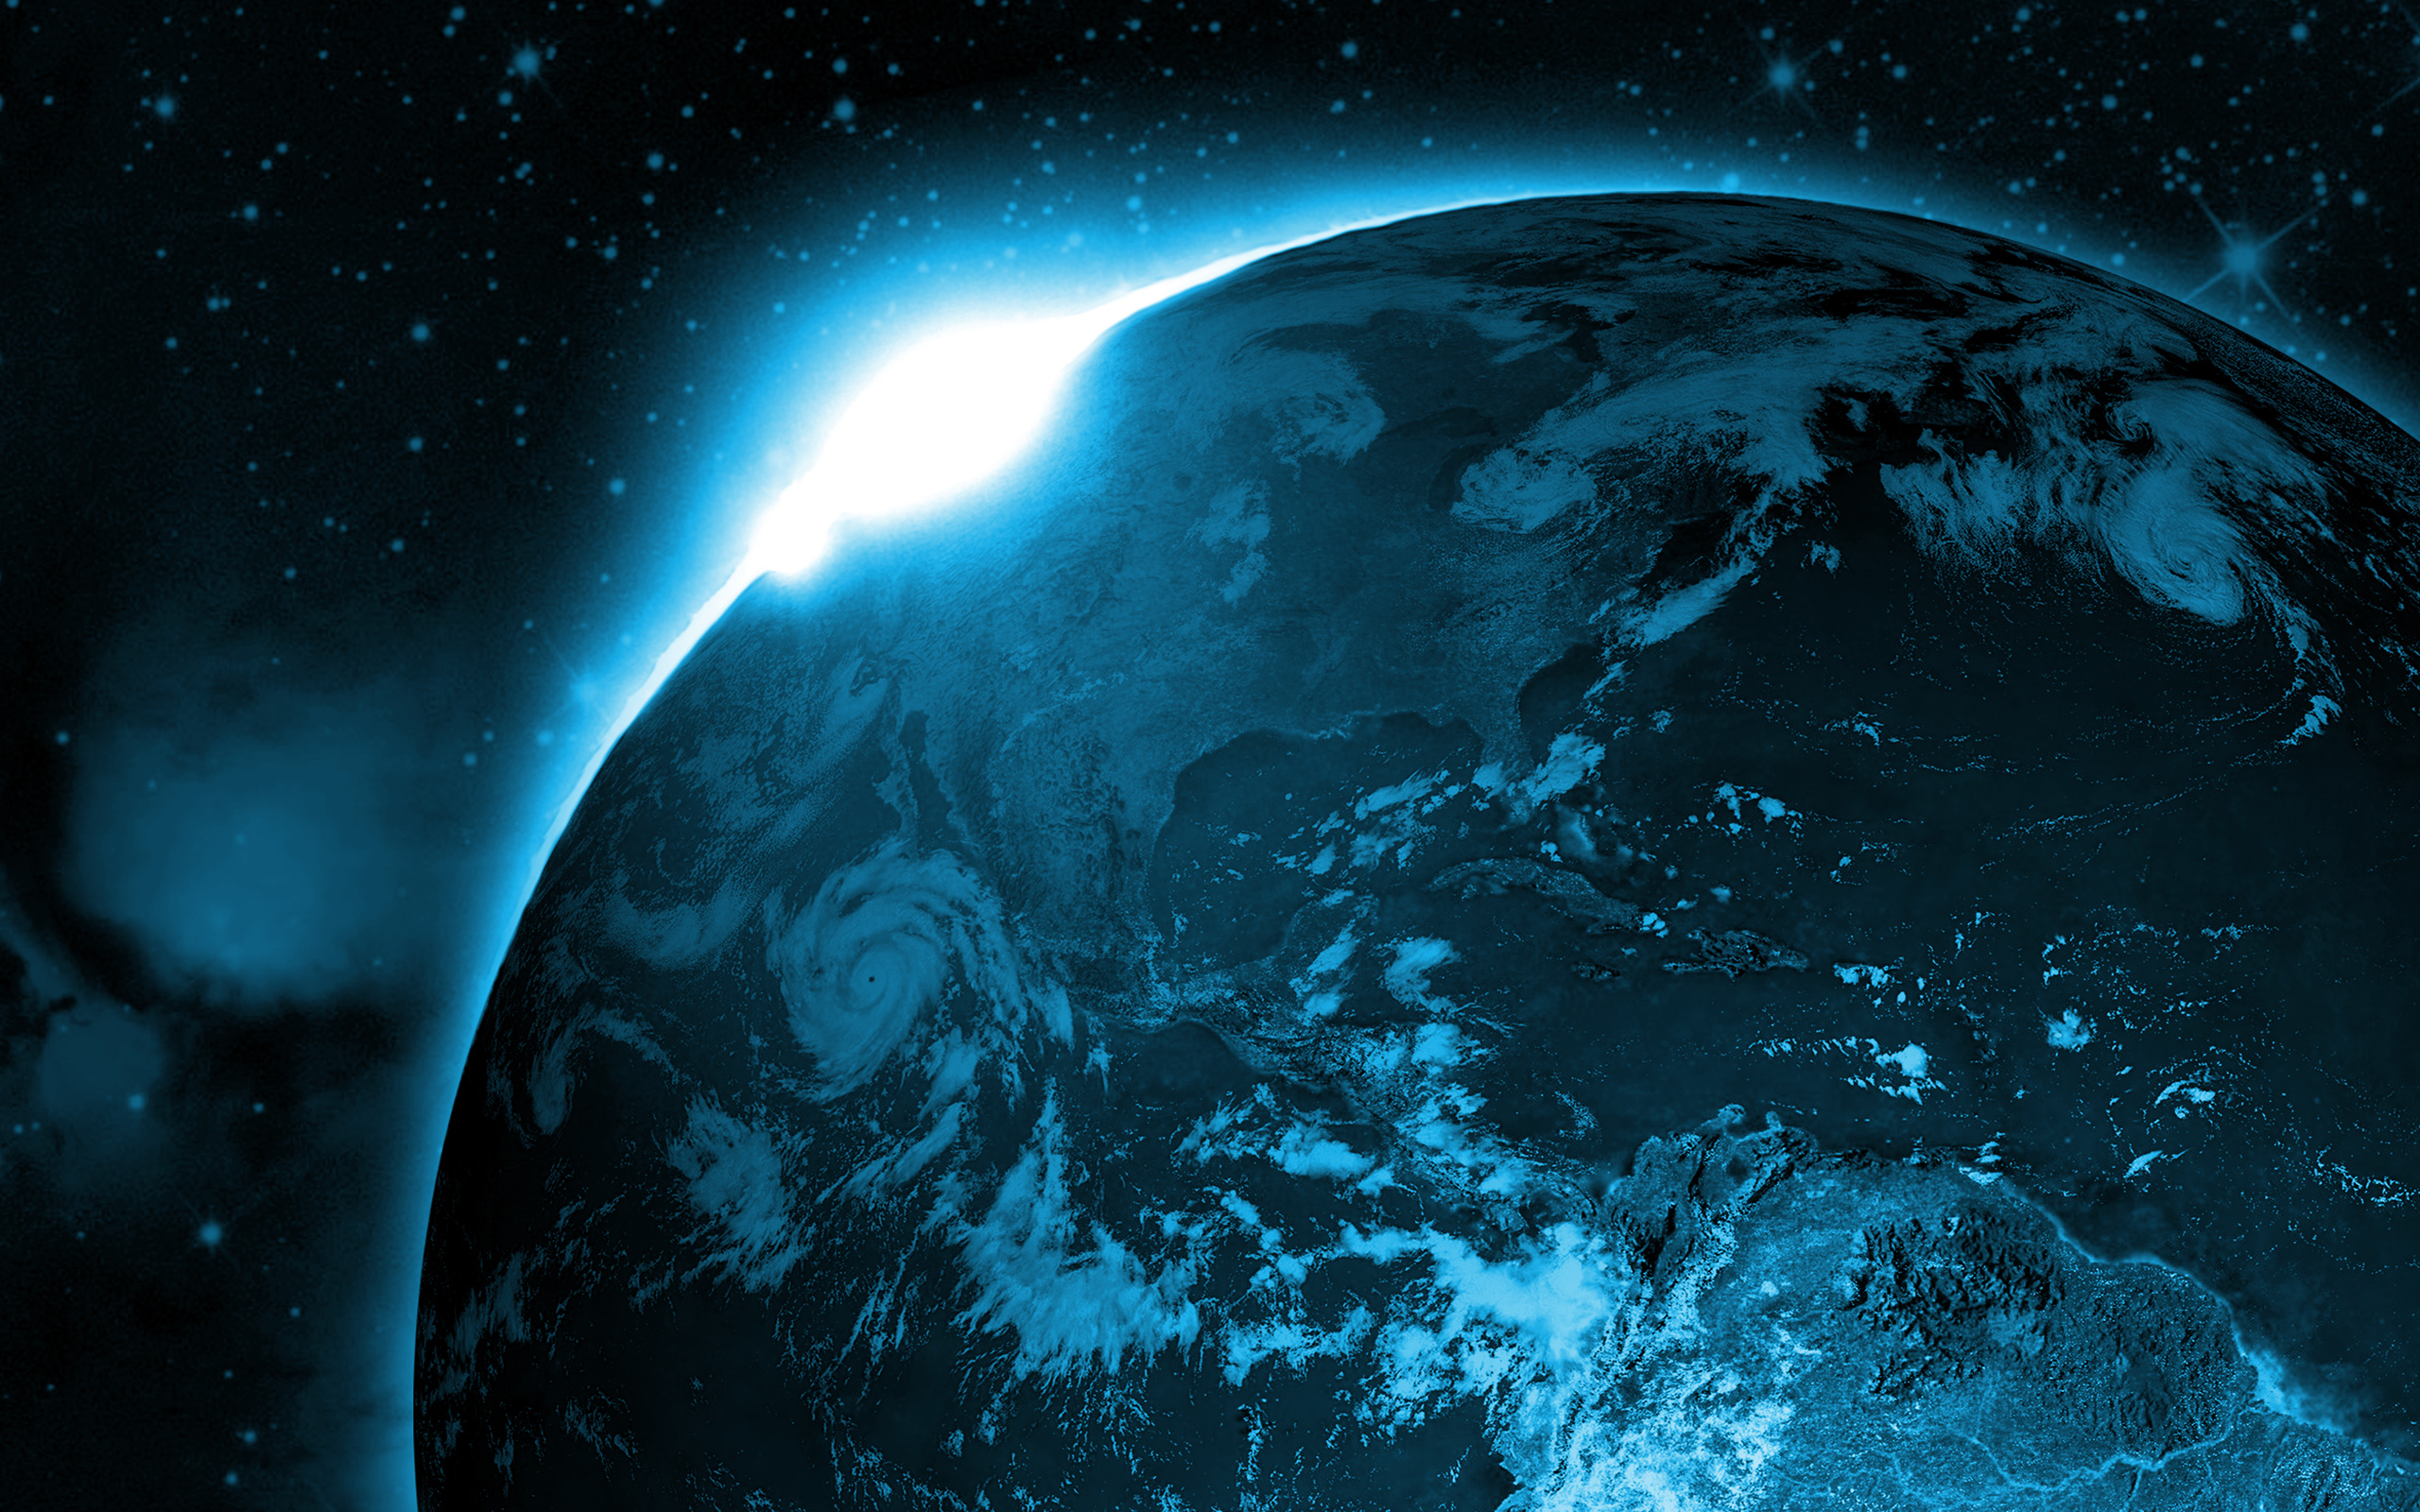 from space hd wallpaper   background image   2560x1600   id:106473